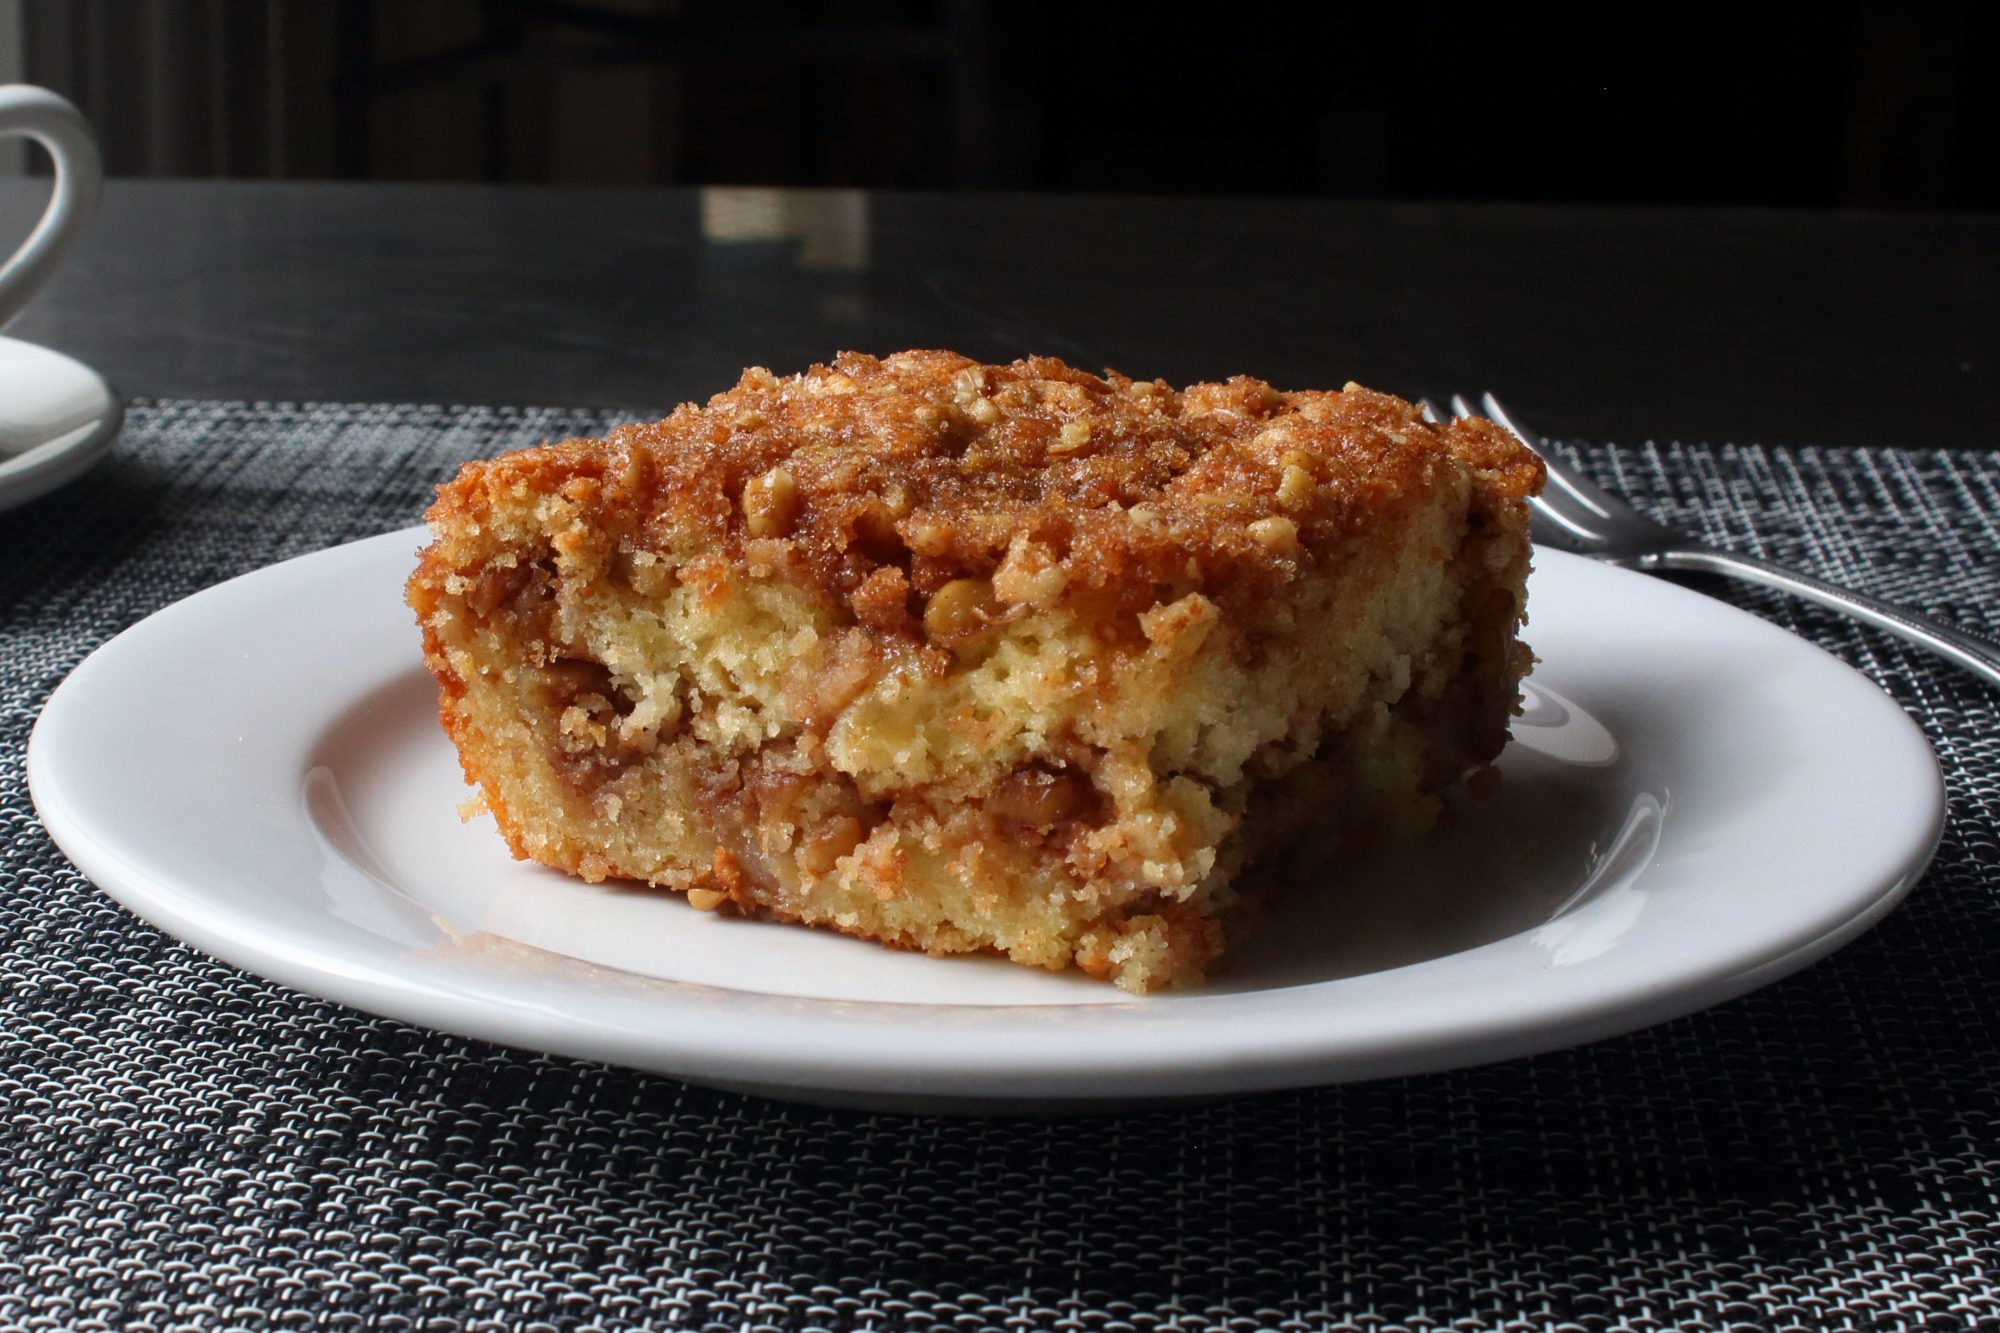 slice of apple crumble coffee cake on a plate